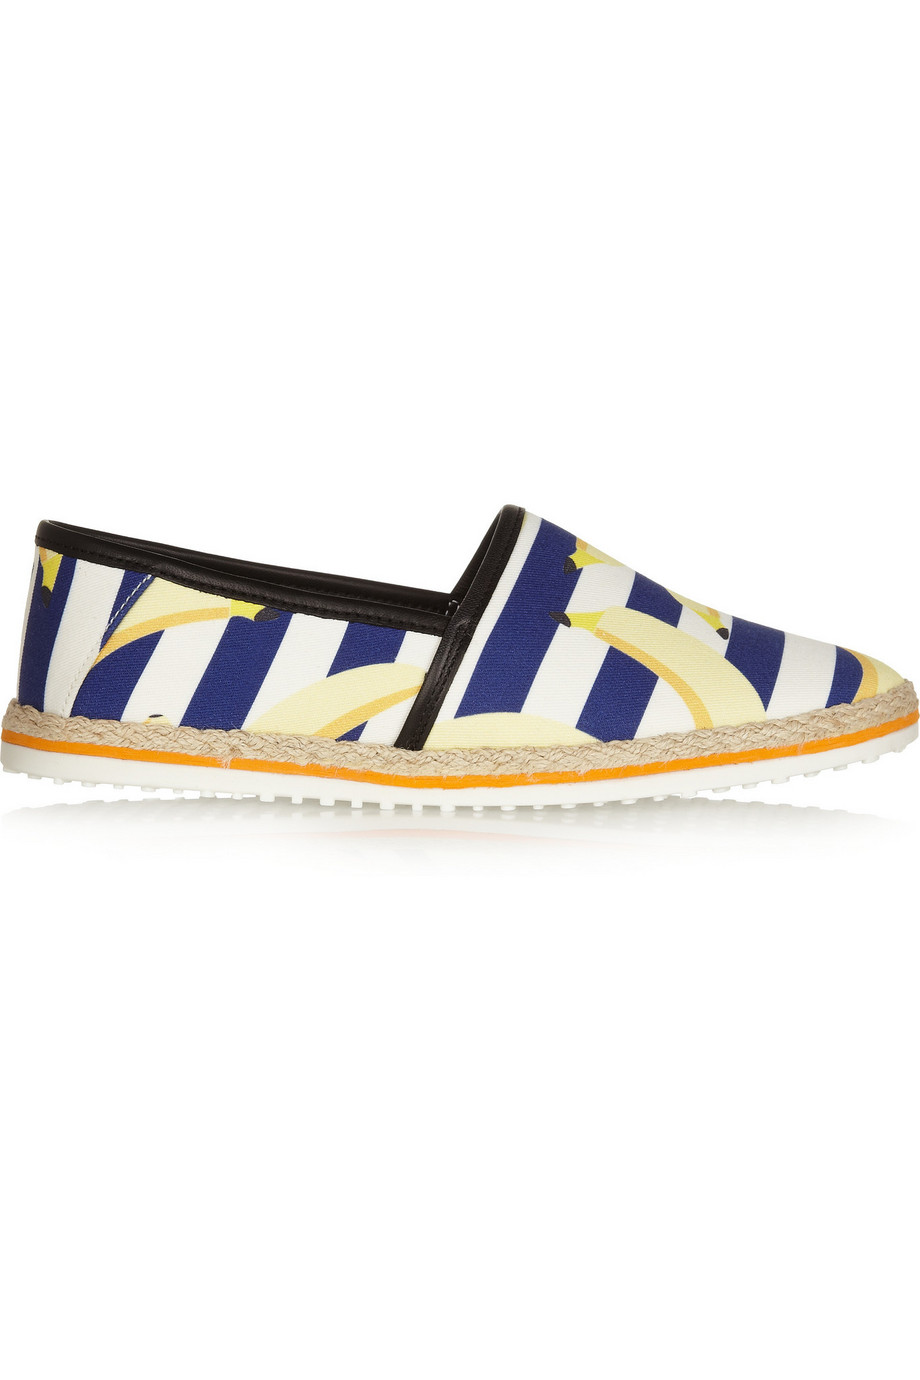 Espadrille and rubber sole measures approximately 25mm/ 1 inch Yellow, blue and white banana-print canvas Elasticated tabs, black leather trims, almond toe Slip on